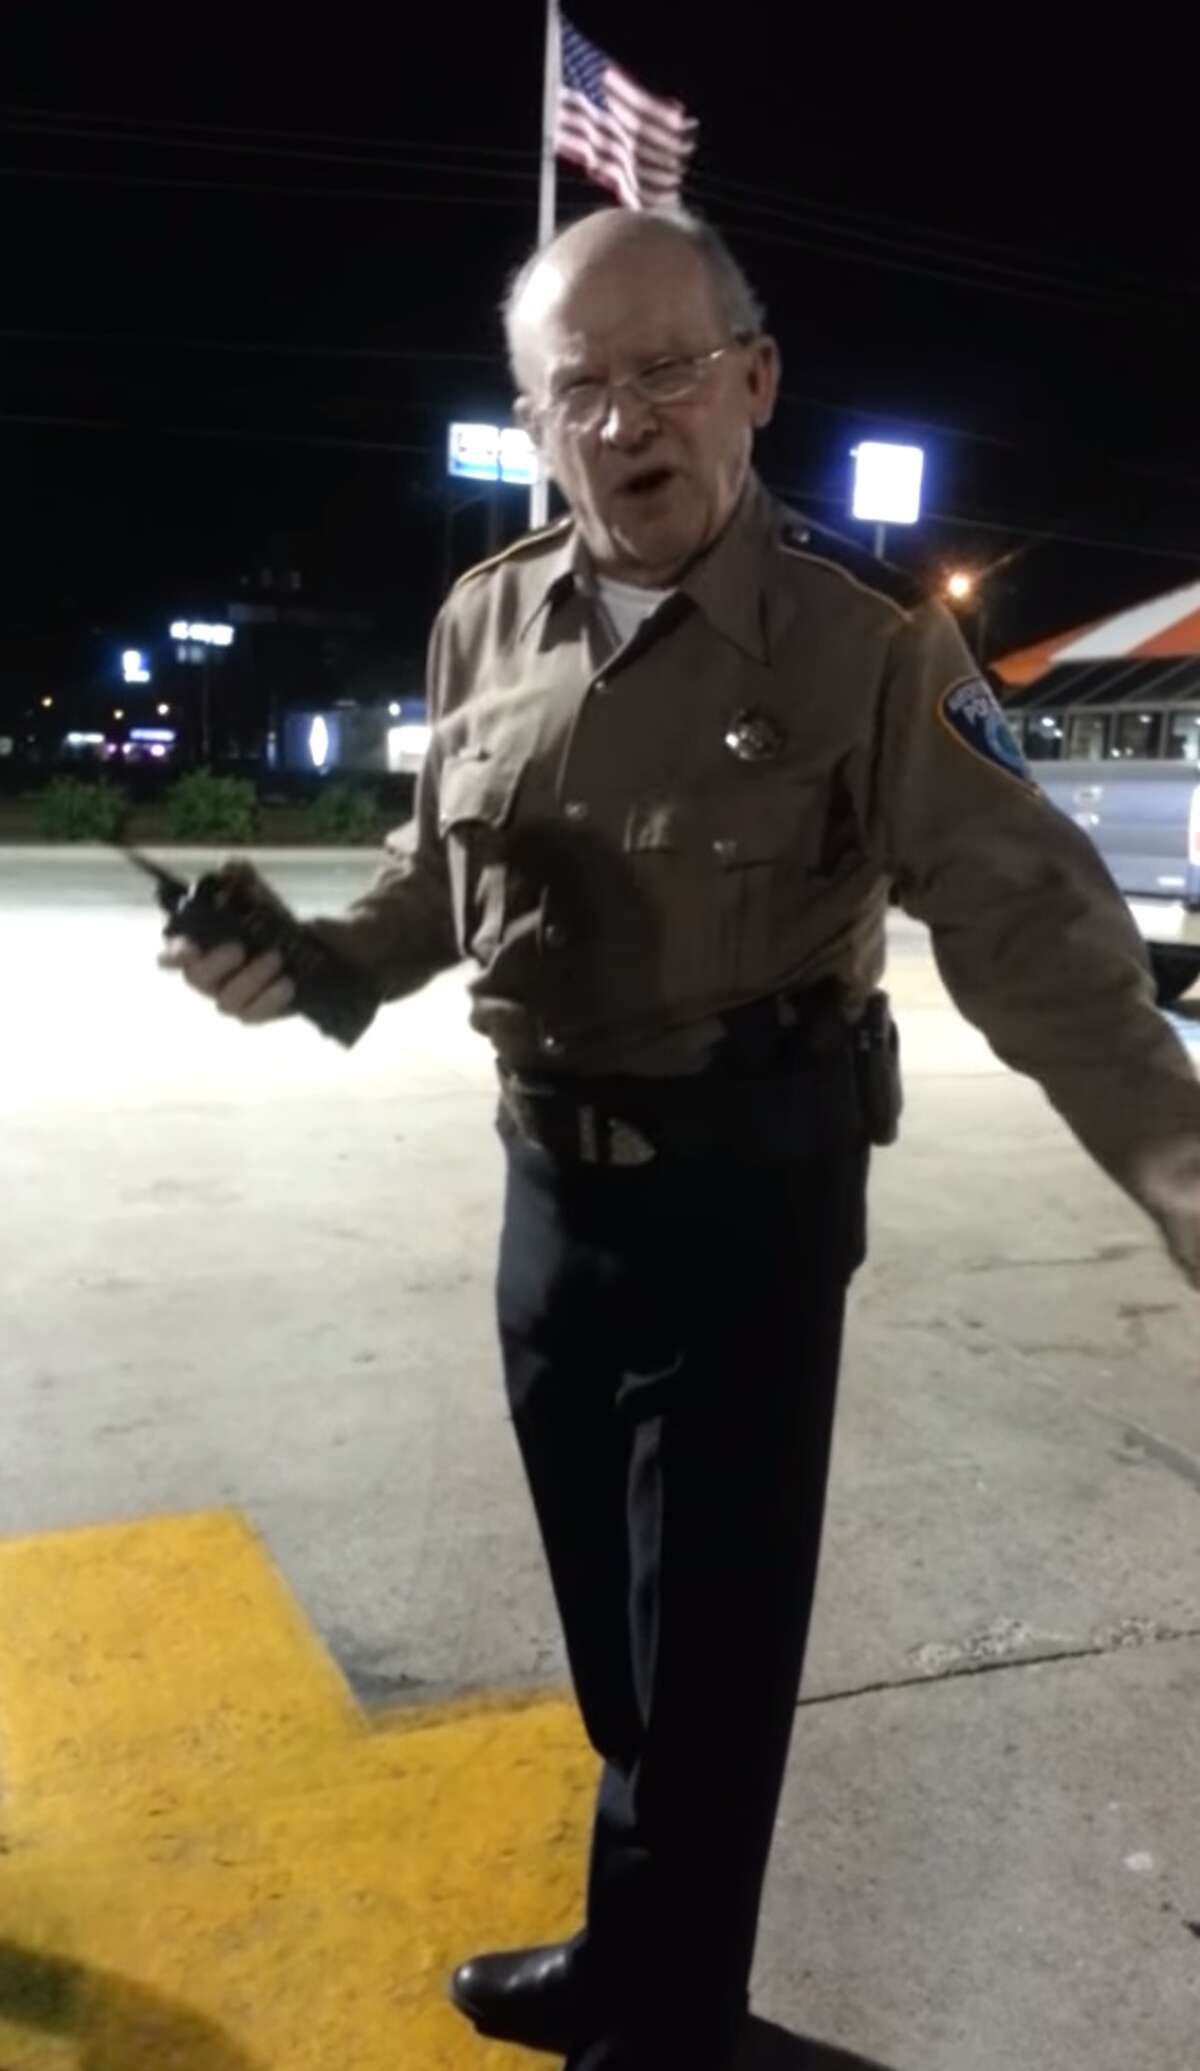 A video uploaded by Lanessa Espinosa on YouTube shows an off-duty officer for the Nueces County Attorney's Office arguing with Espinosa. The officer asked Espinosa for her identification, but she did not provide it because she said it was unnecessary. Later, officers placed her in a choke hold and detained her for